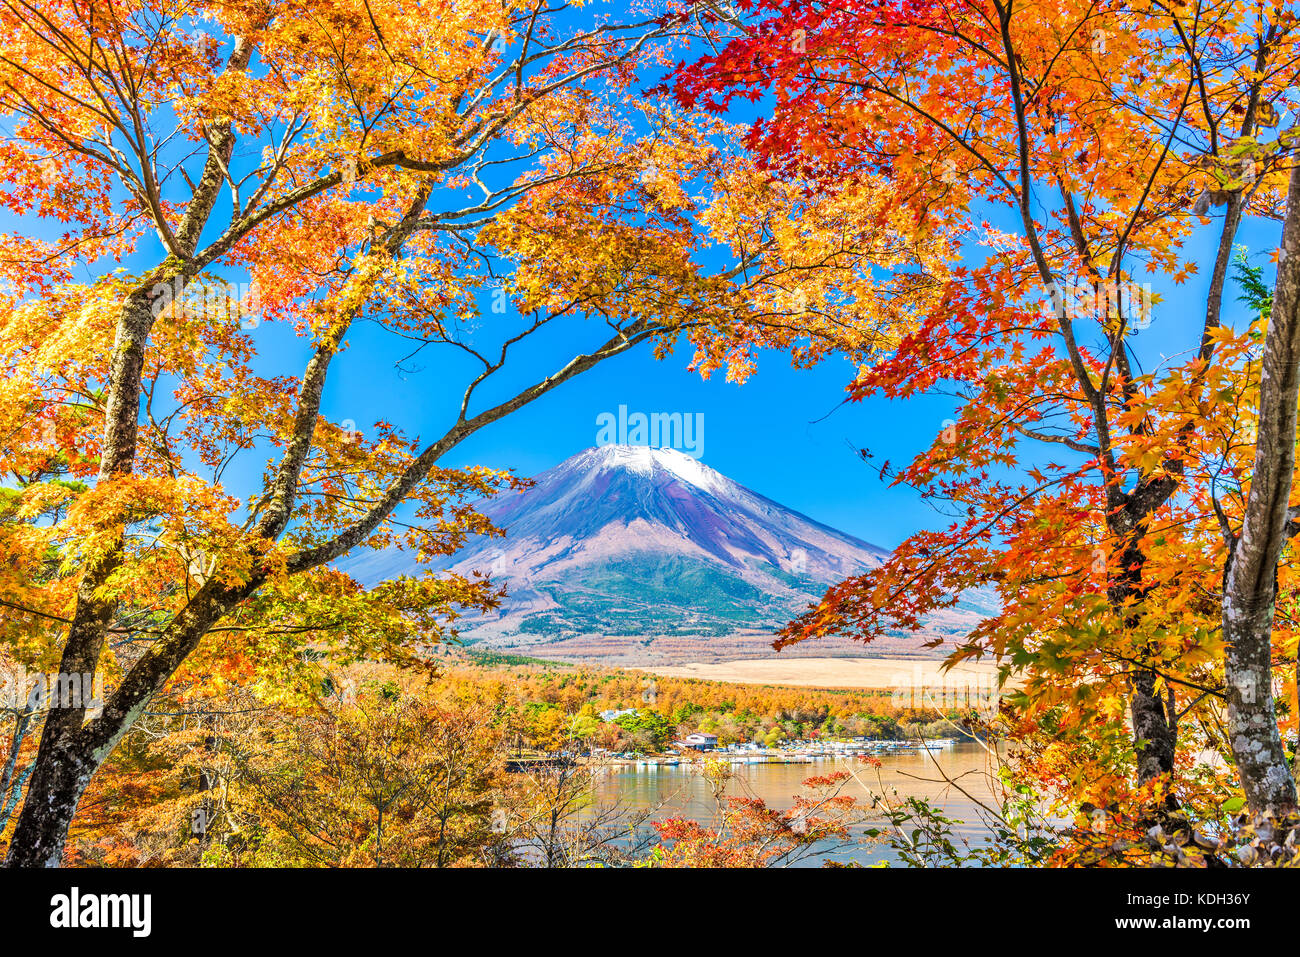 Mt Fuji., Japon, du lac Yamanaka en automne. Photo Stock